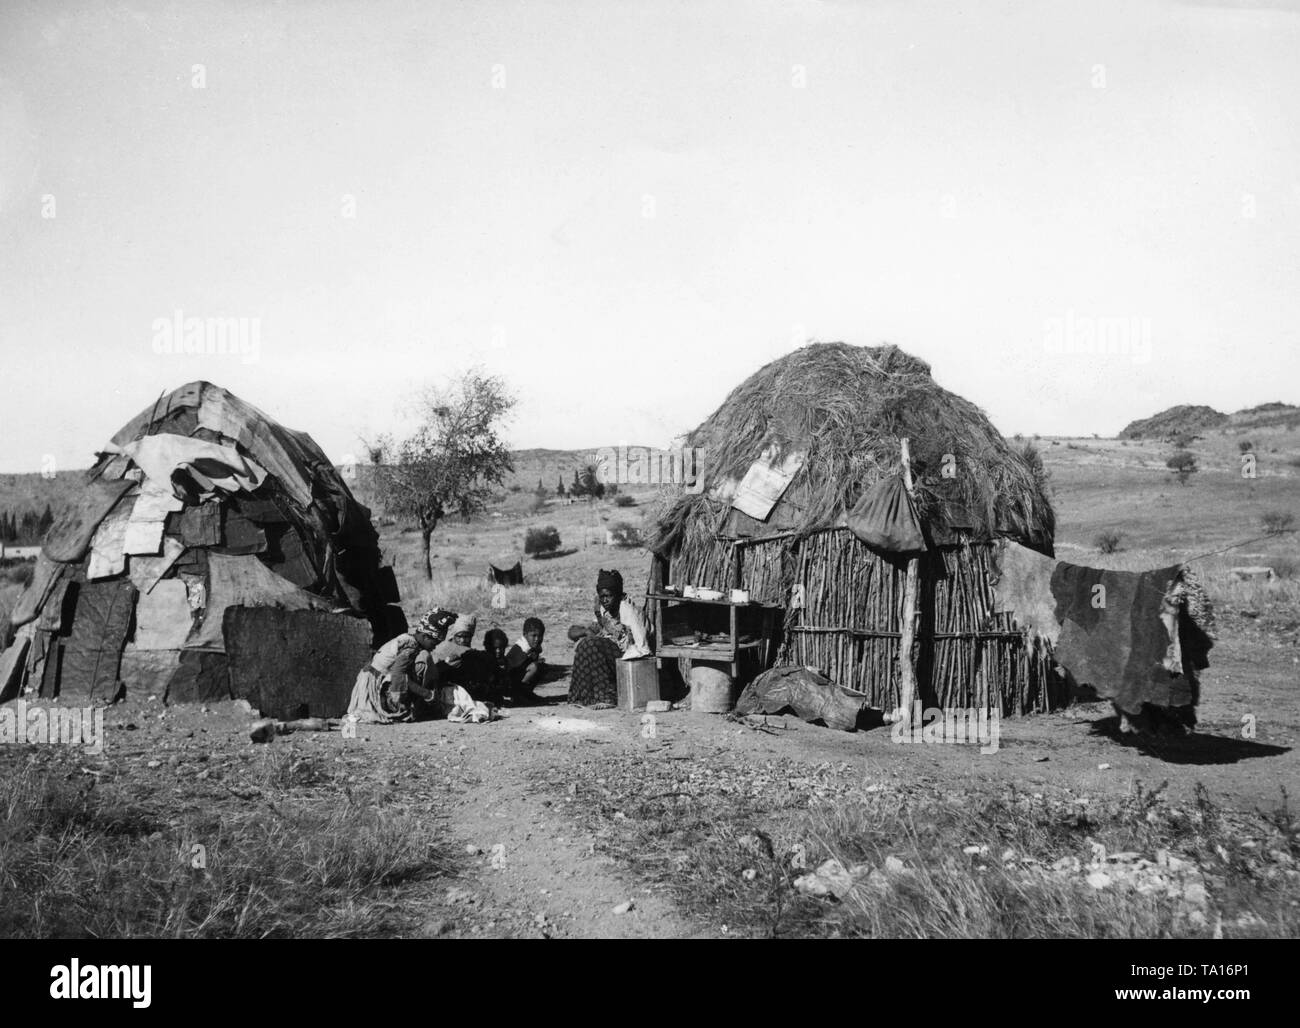 A group of children in European clothes sits between two pondoks in the former German South West Africa. The settlement is located in the Auesbergen on the grounds of a farm operated by Germans. - Stock Image